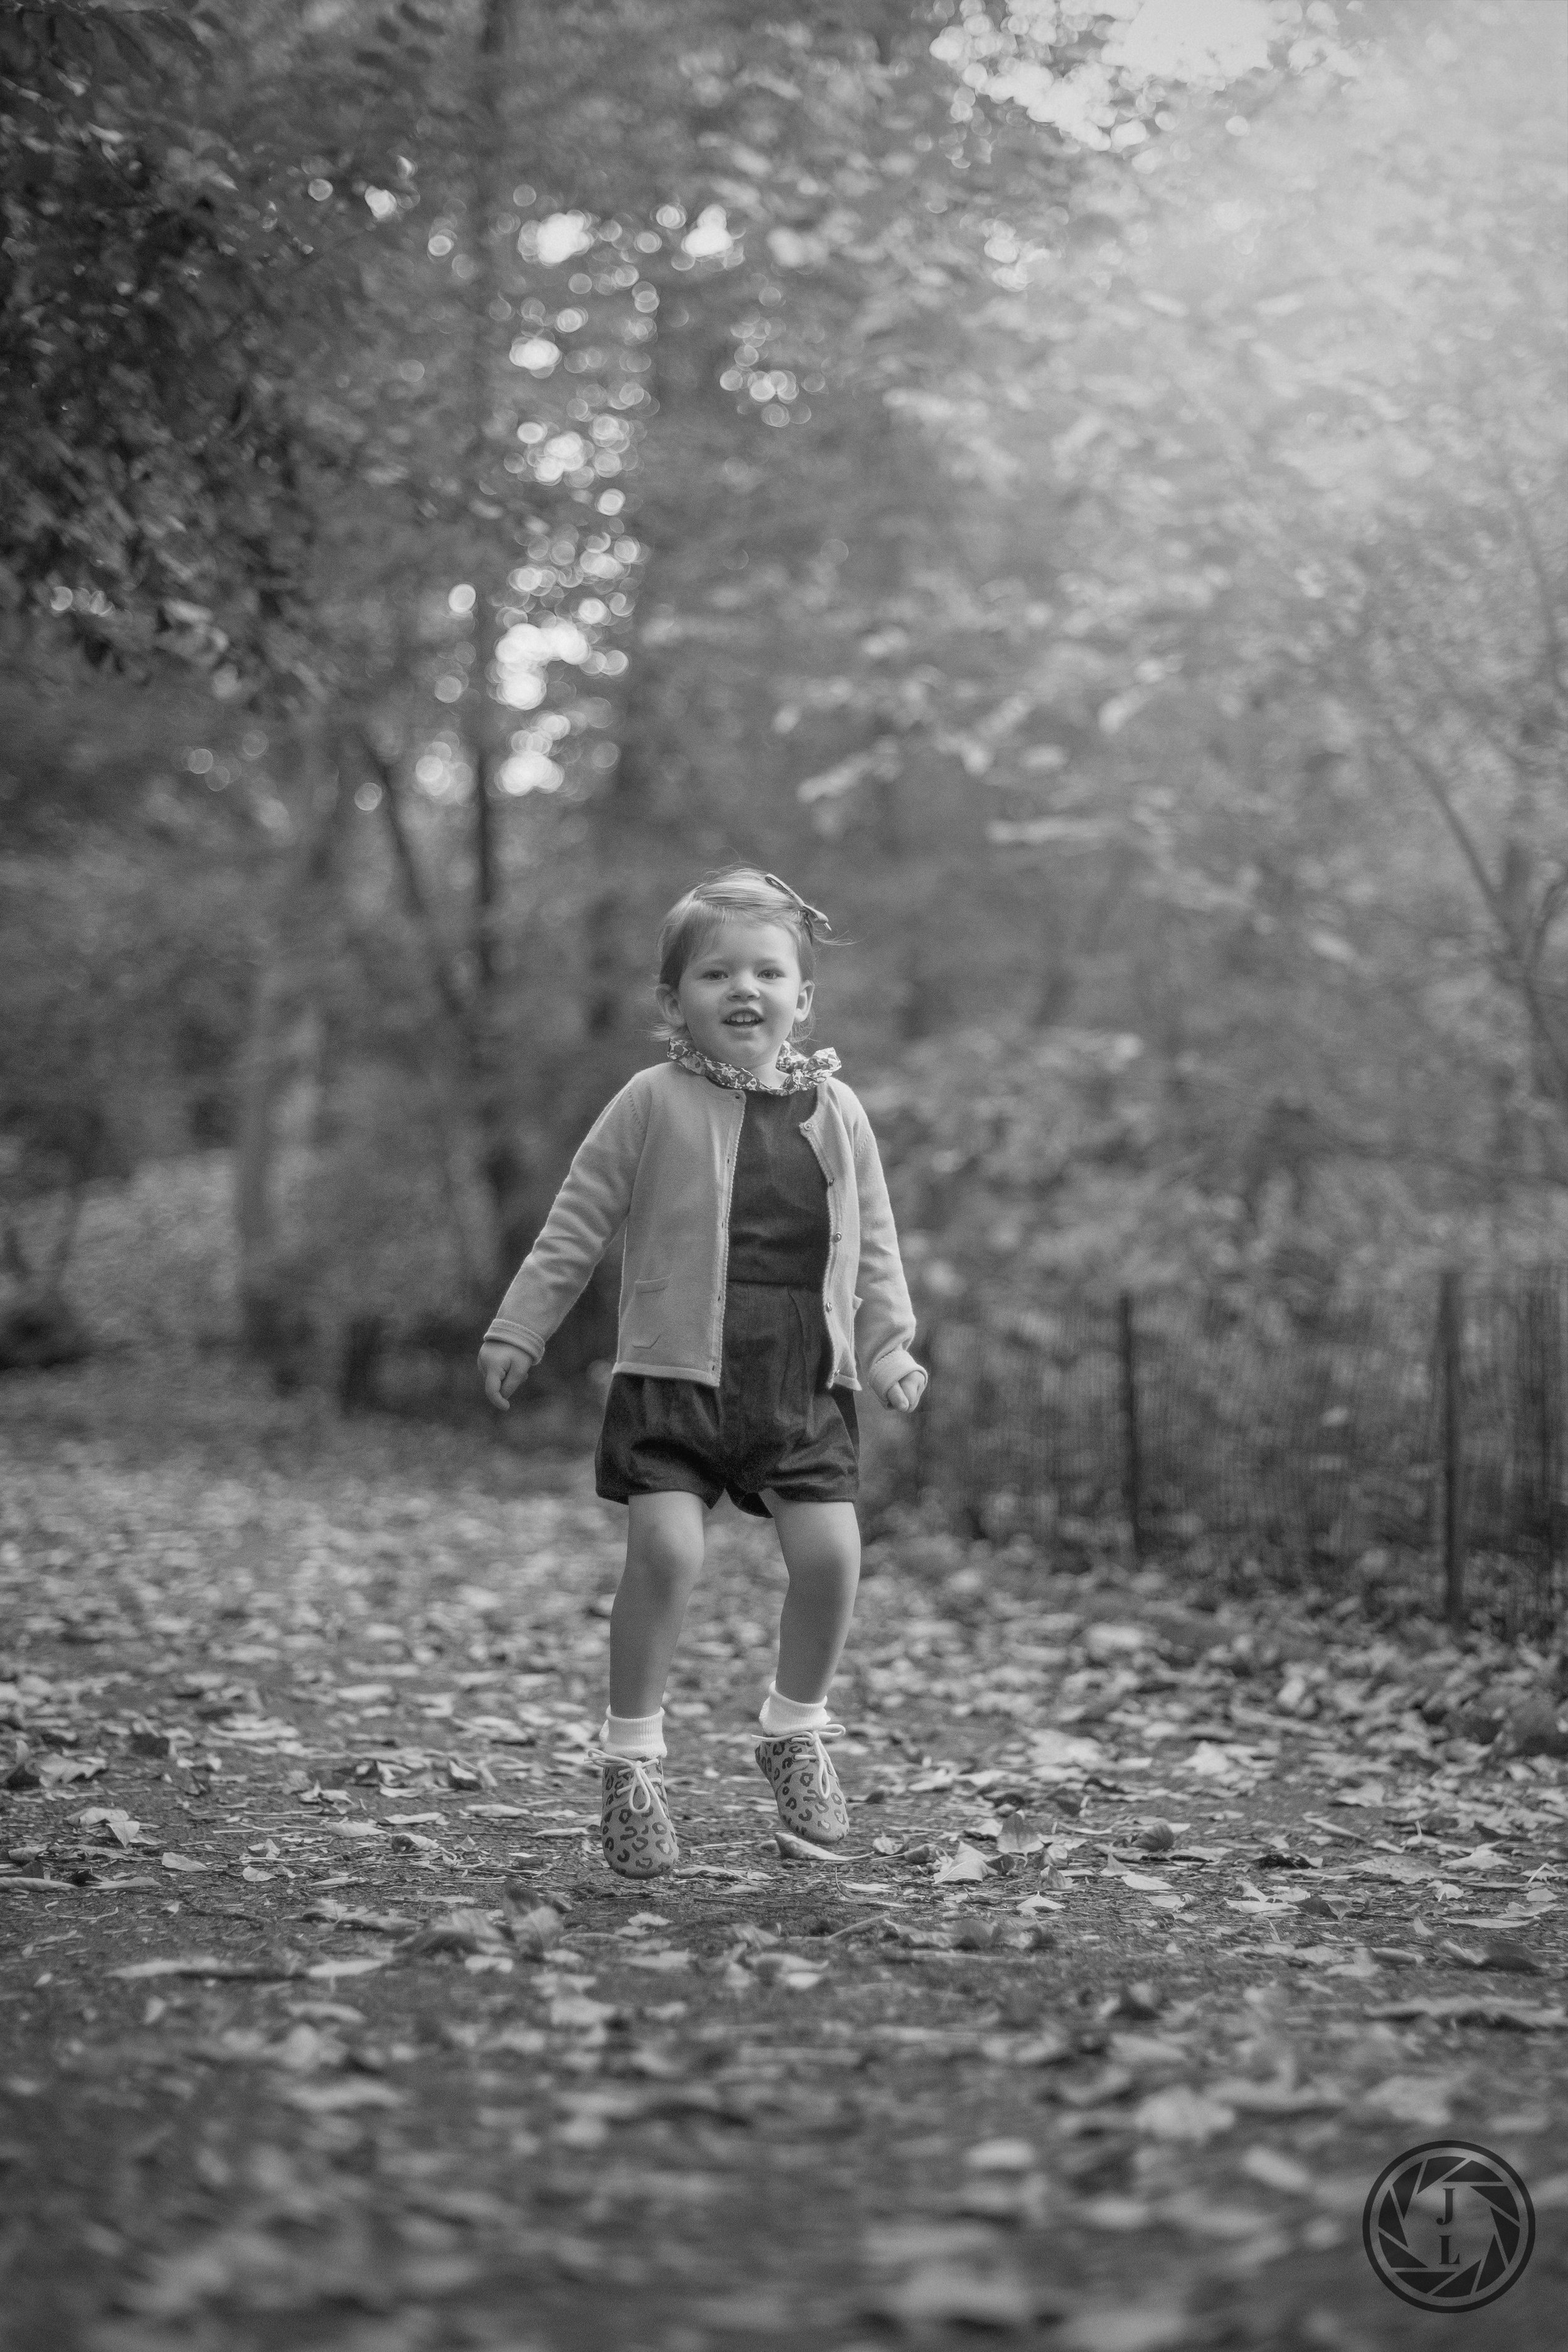 black and white image of a young girl jumping in the air in the park